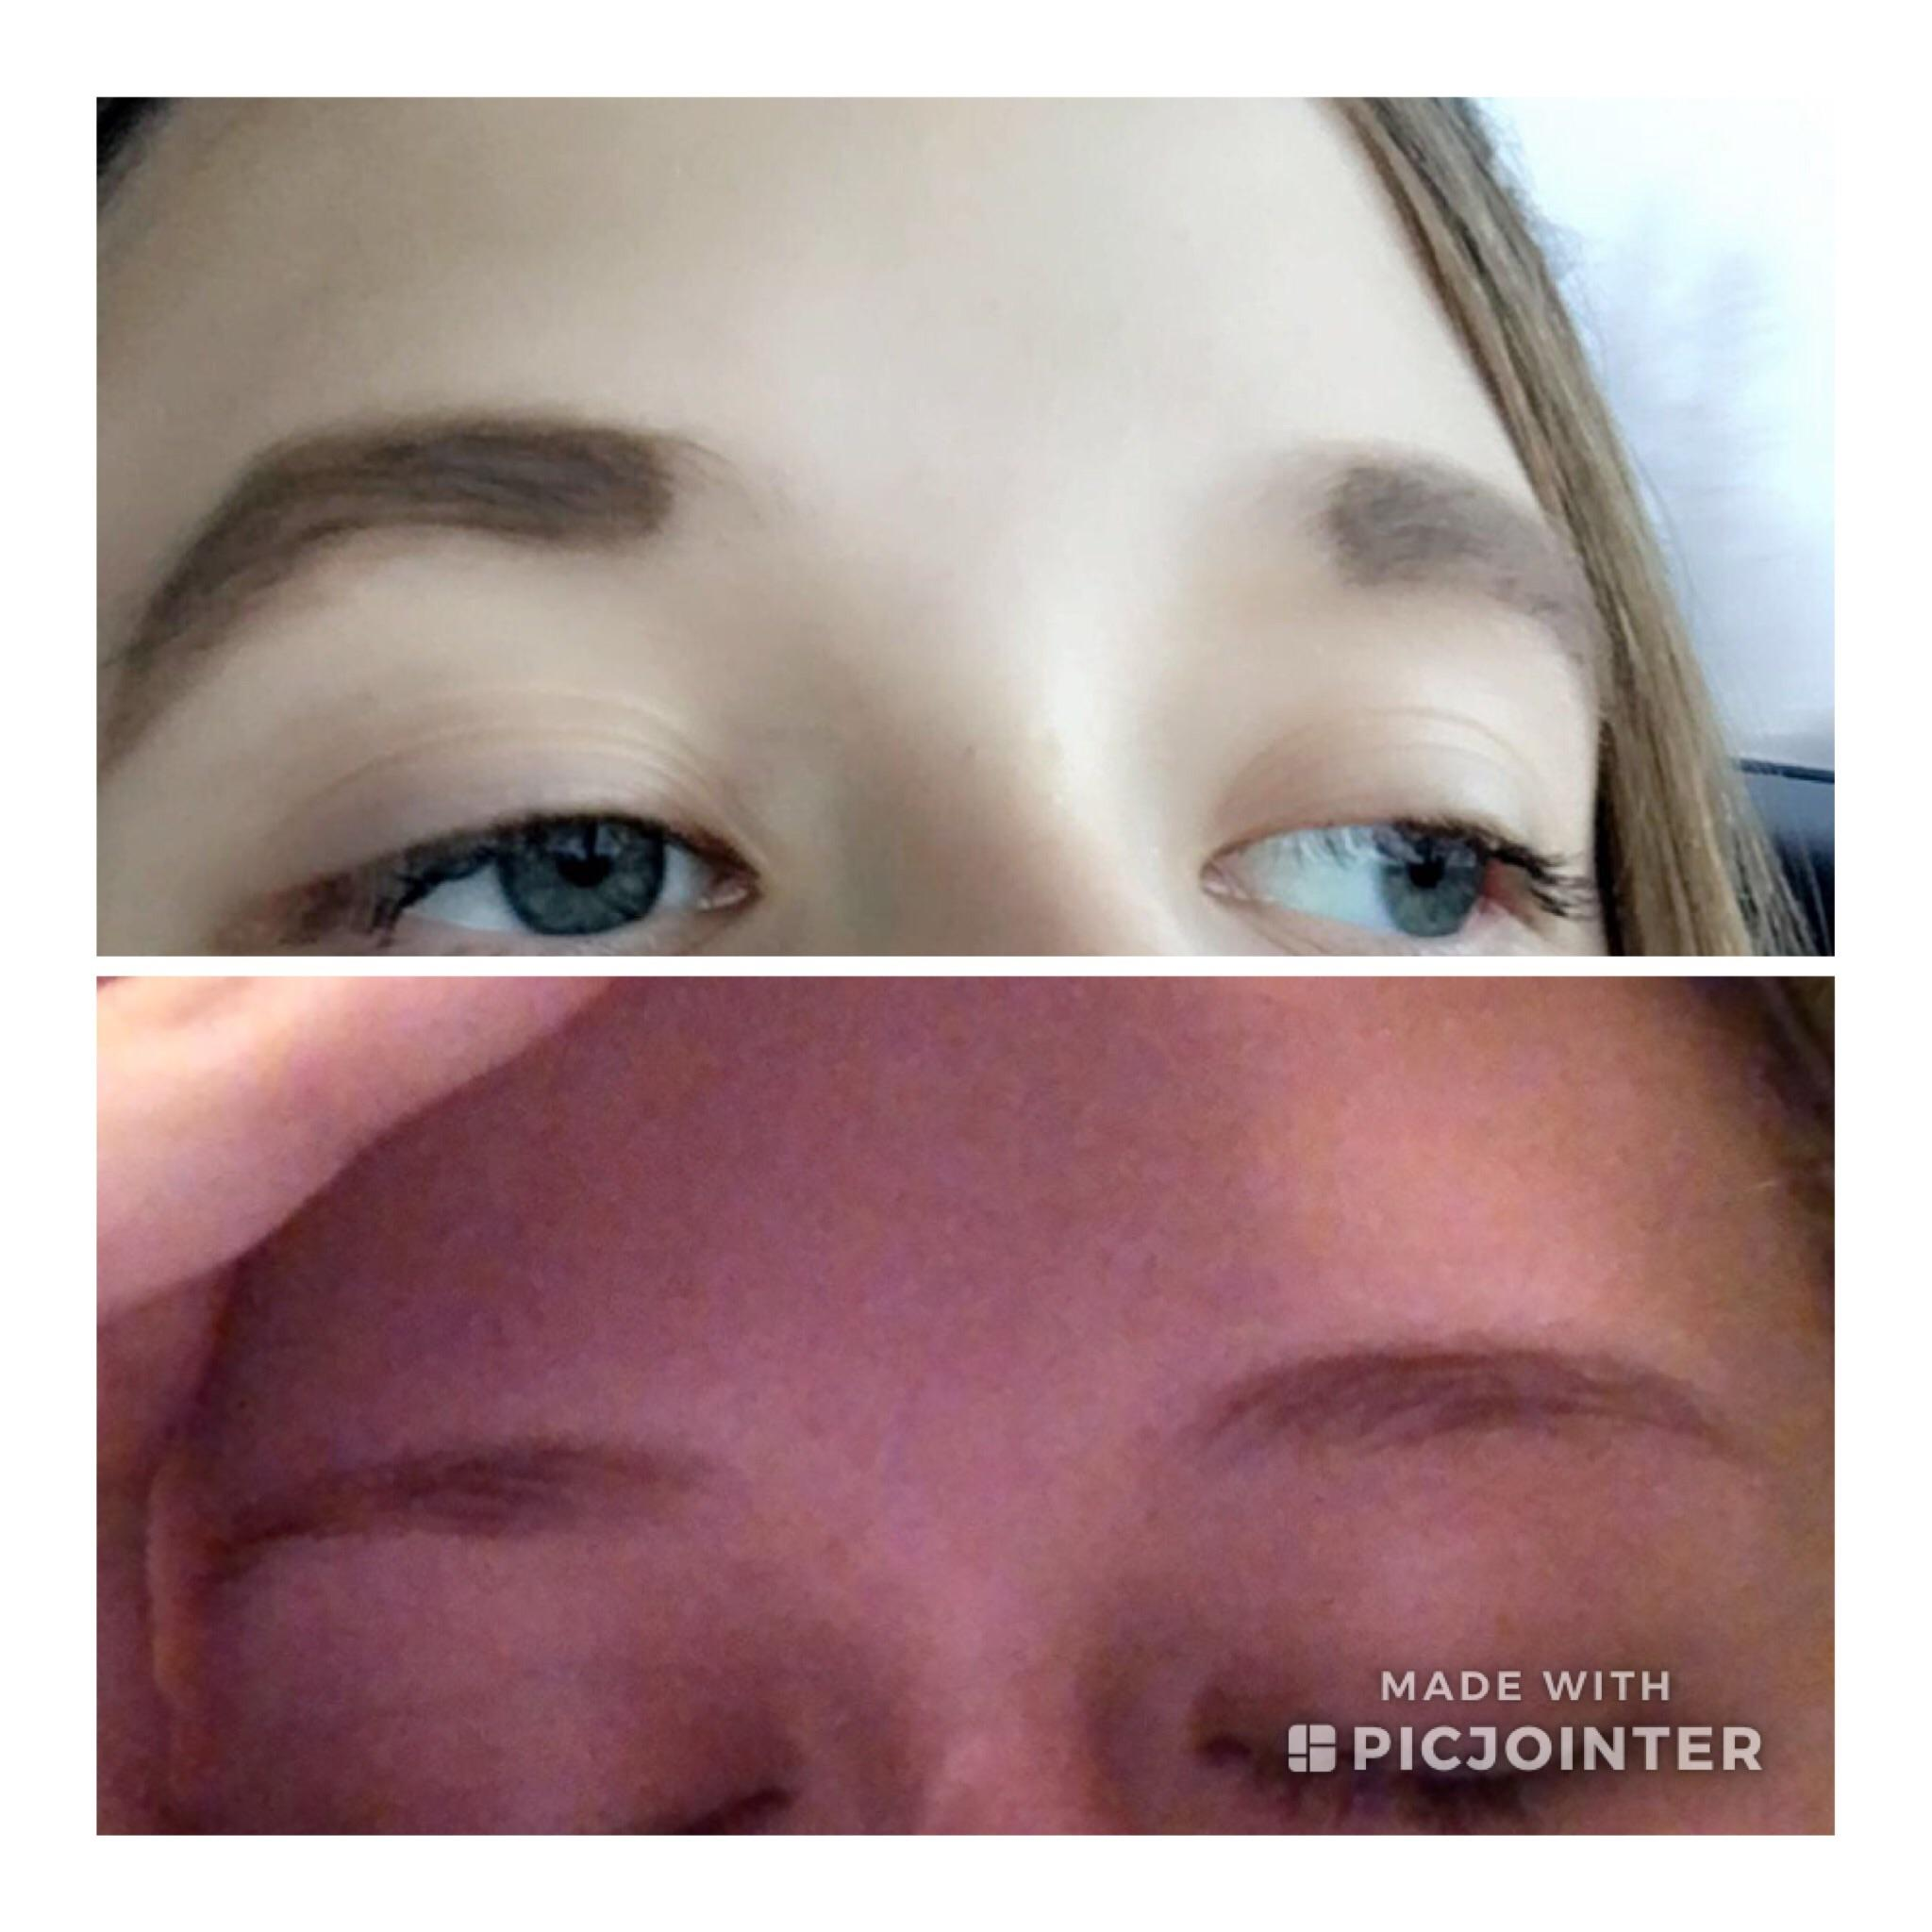 My Eyebrows 3 Years Ago Vs Now I Dye Them With Beard Dye My Friends Told Me My First Brows Were Good Awfuleyebrows